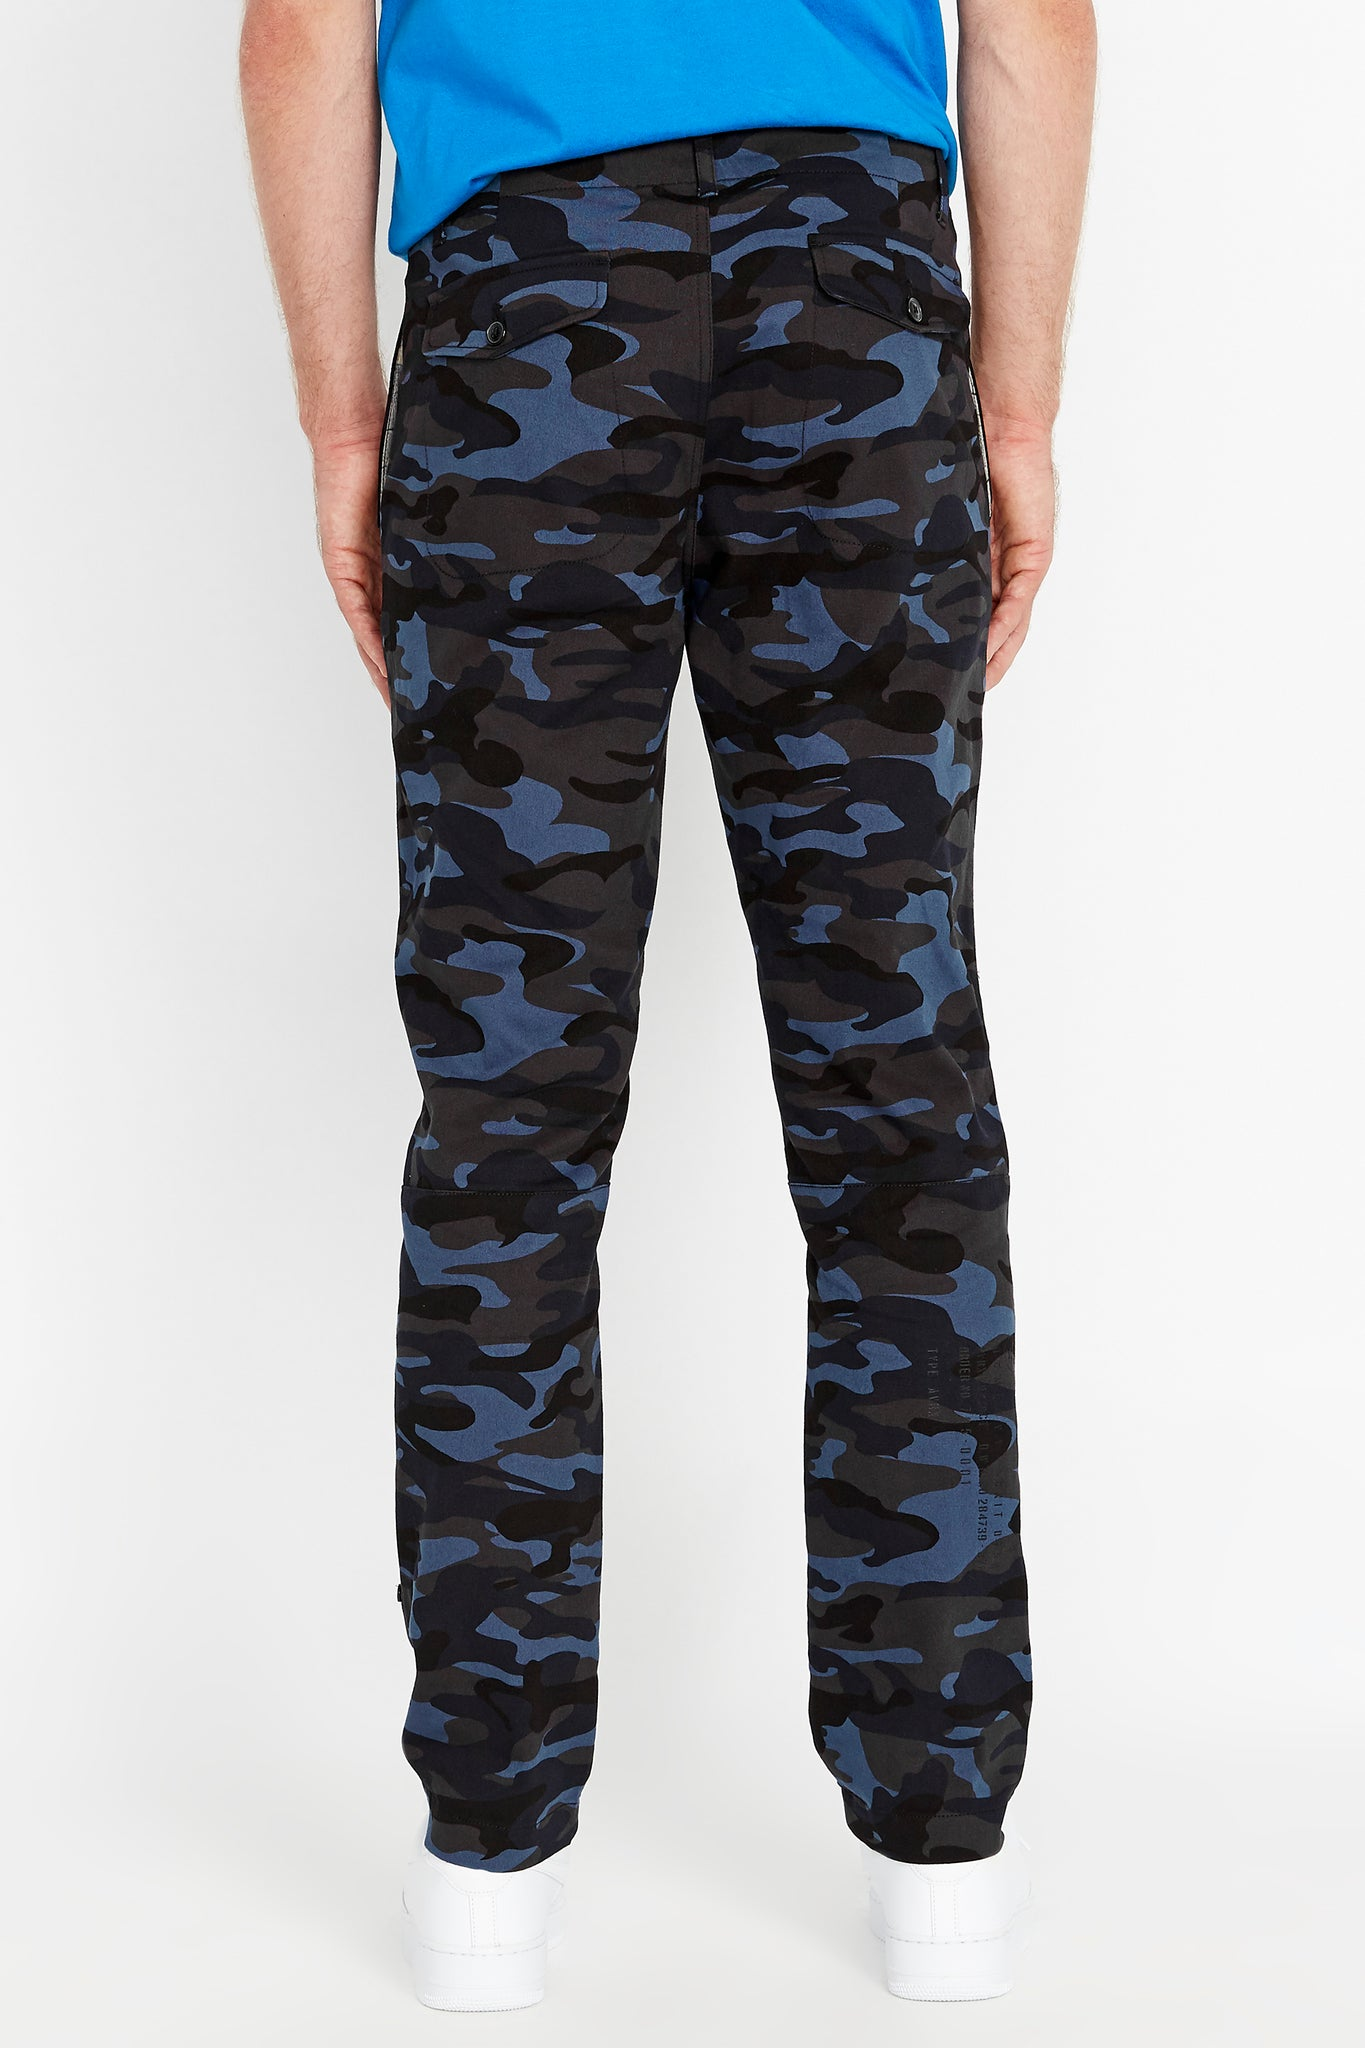 Back view of navy camo print pants with two button flap pockets on the back and text print on right hem